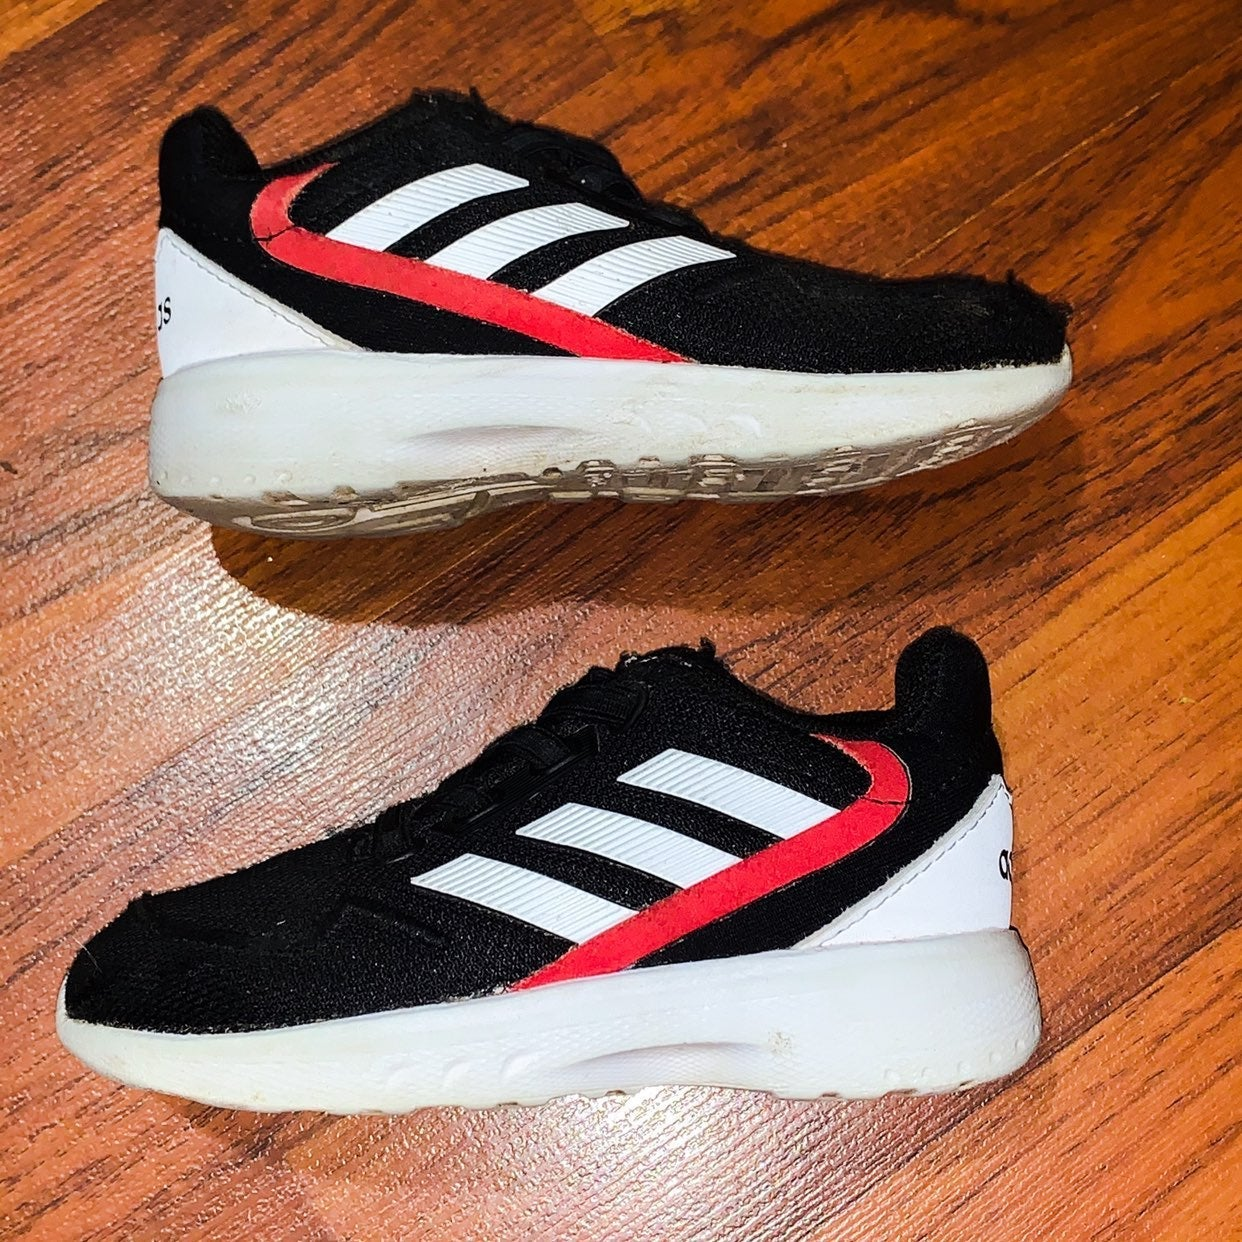 Adidas Infant Shoes Black/Red Size 6.5K